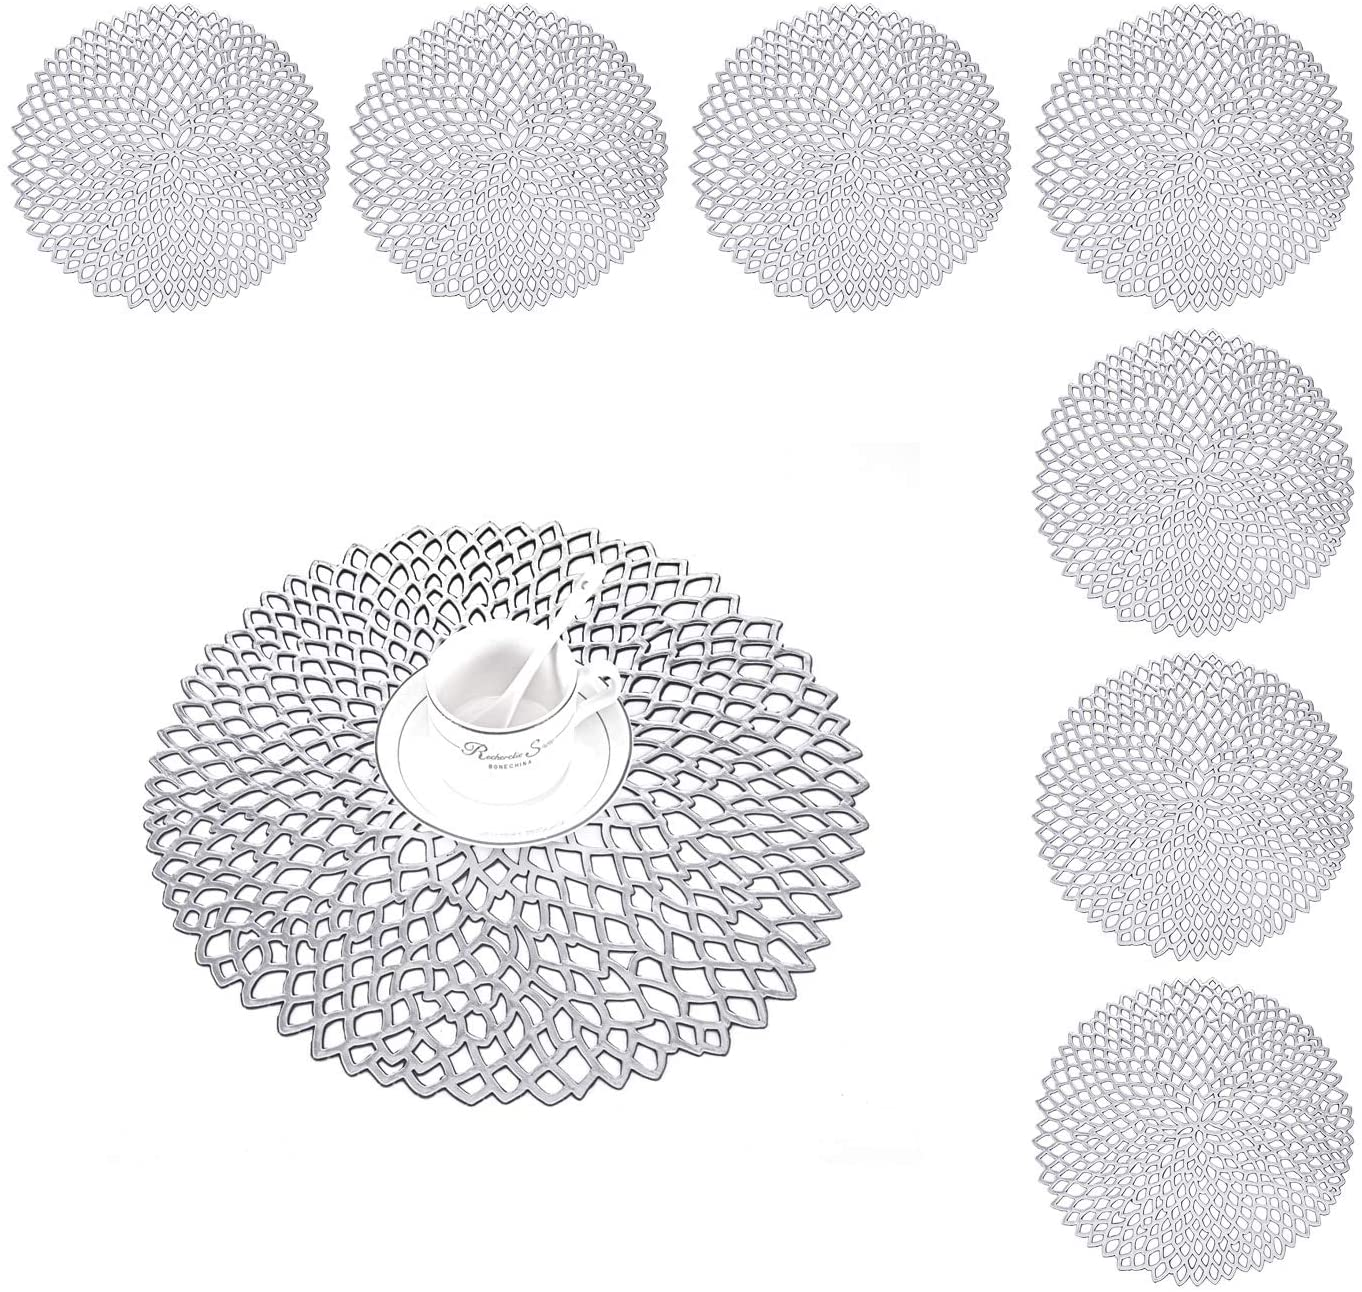 Set of 8 Round Placemats, Washable Heat Resistant Dining Place Mat, Crossweave Woven Vinyl PVC Table Mats, Coasters for Garden BBQ Outdoor